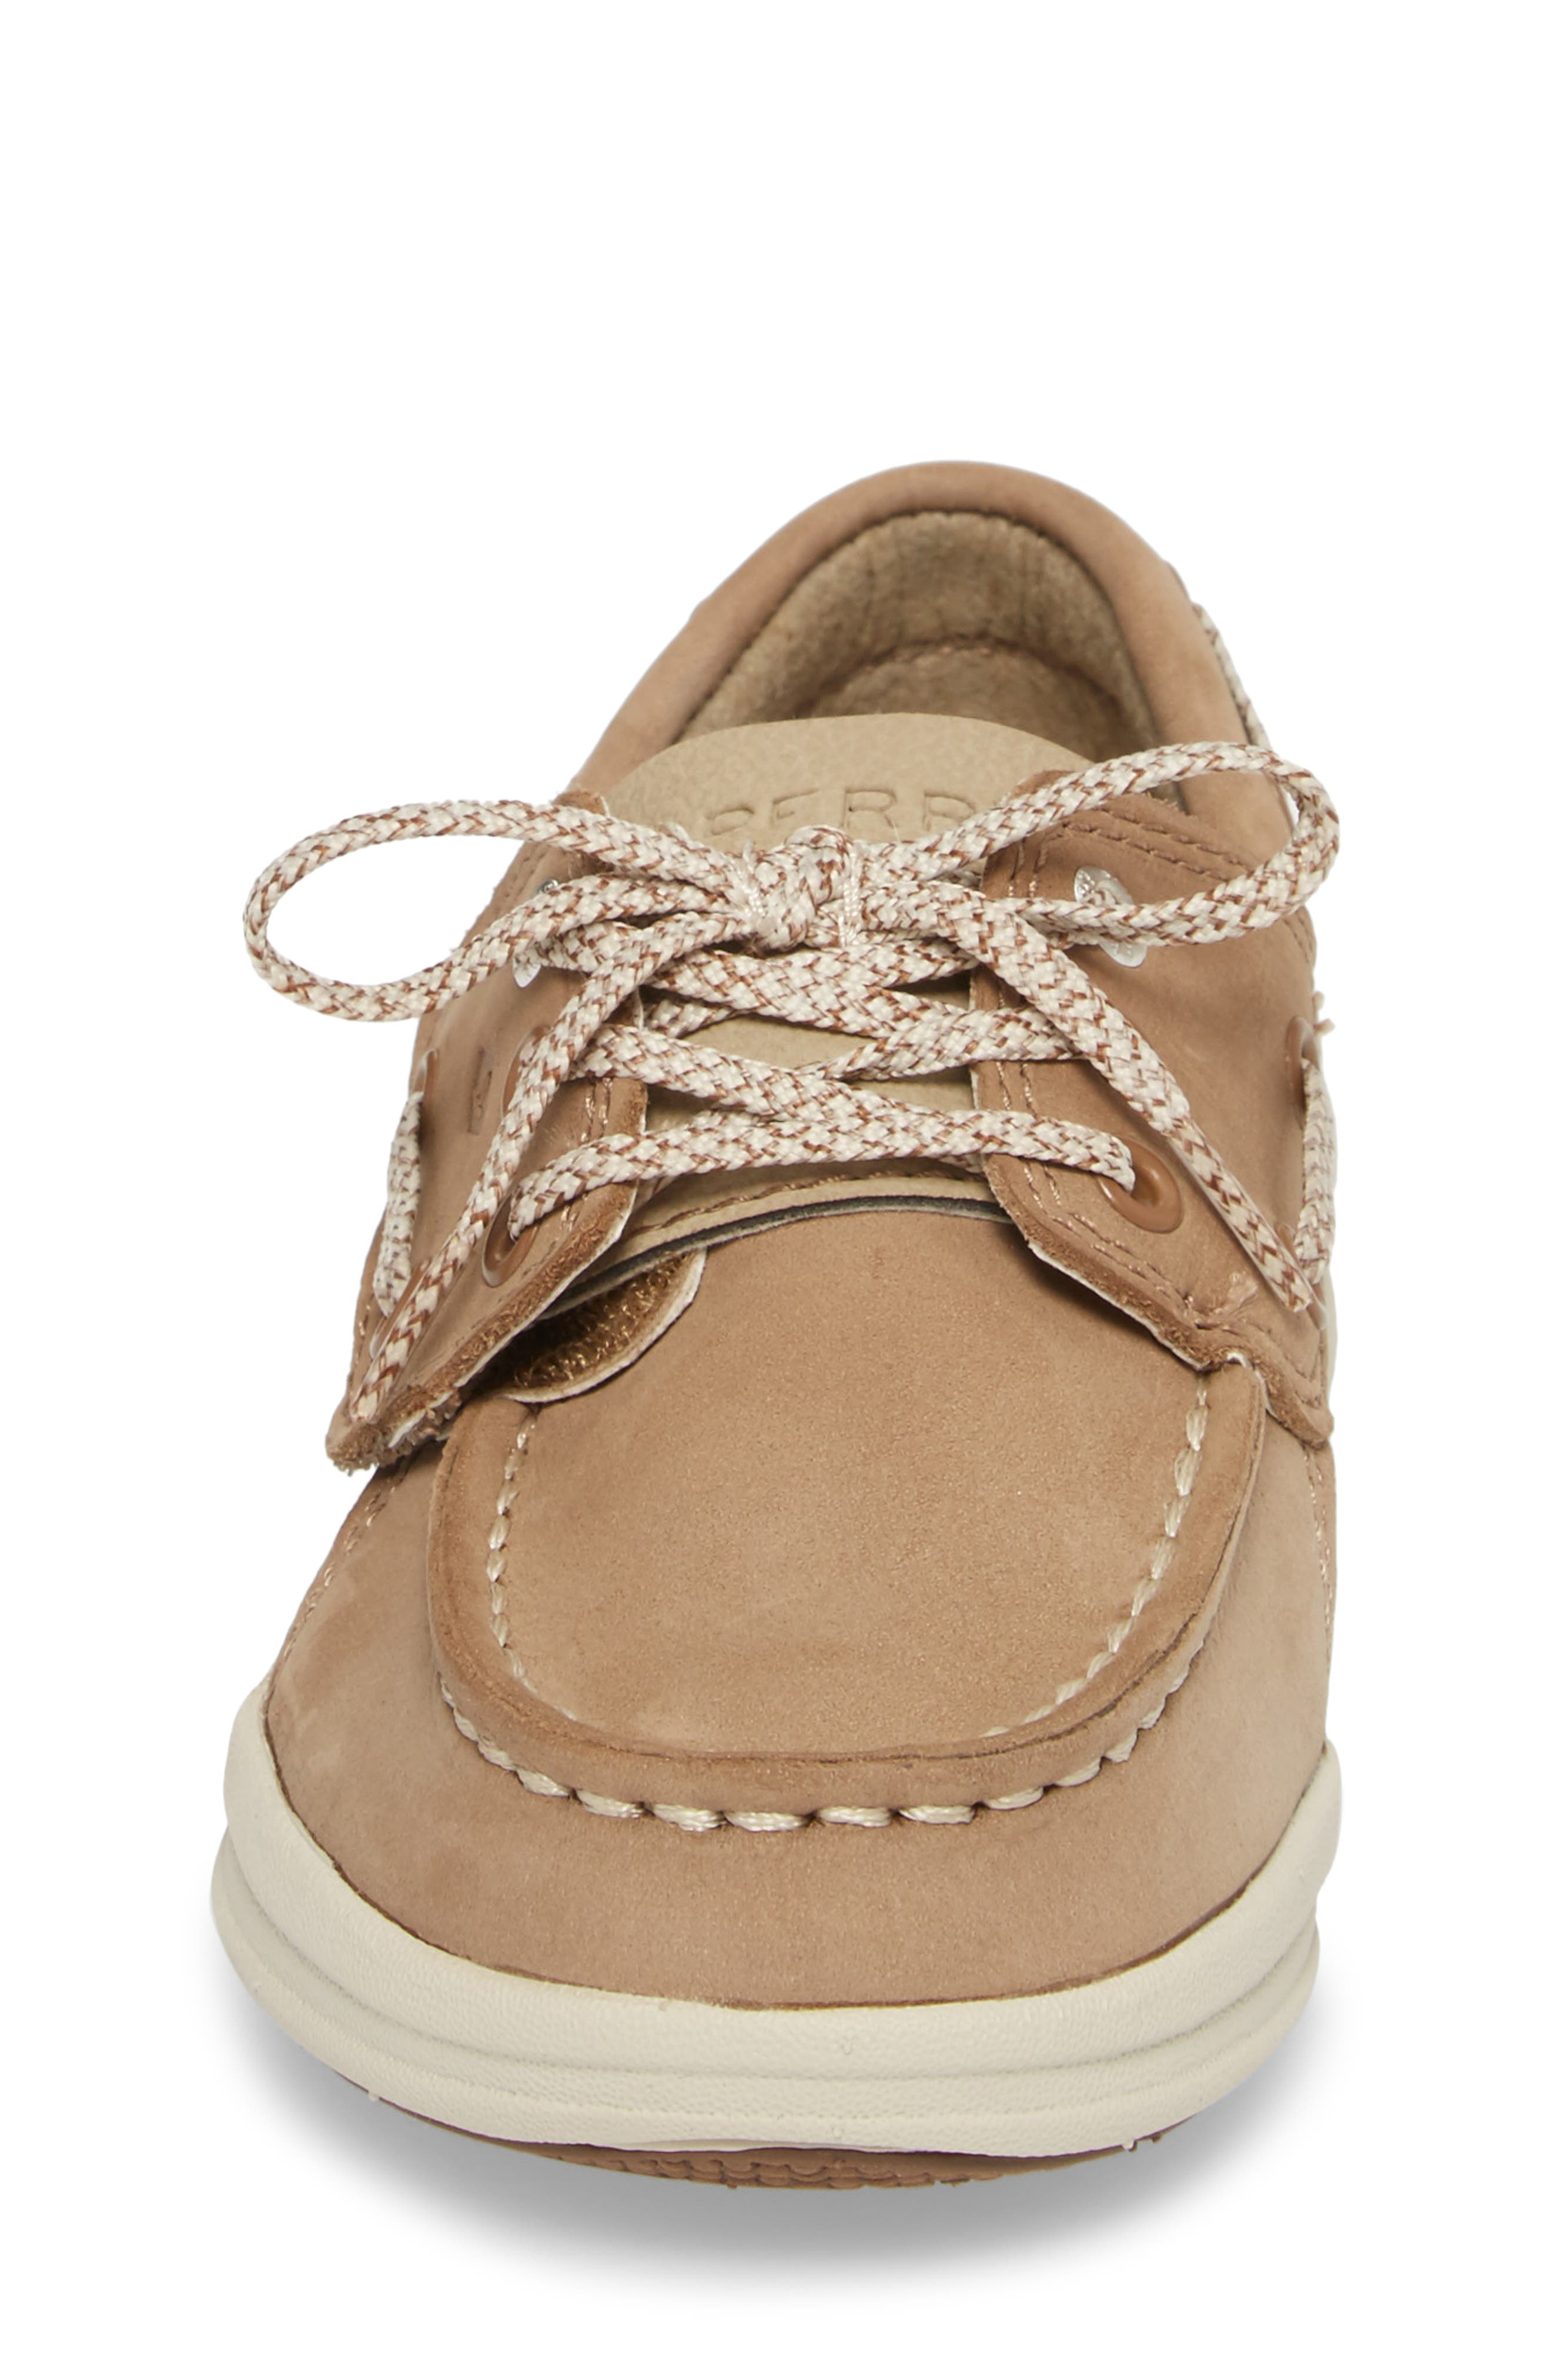 Alternate Image 4  - Sperry Kids Gamefish Boat Shoe (Walker & Toddler)